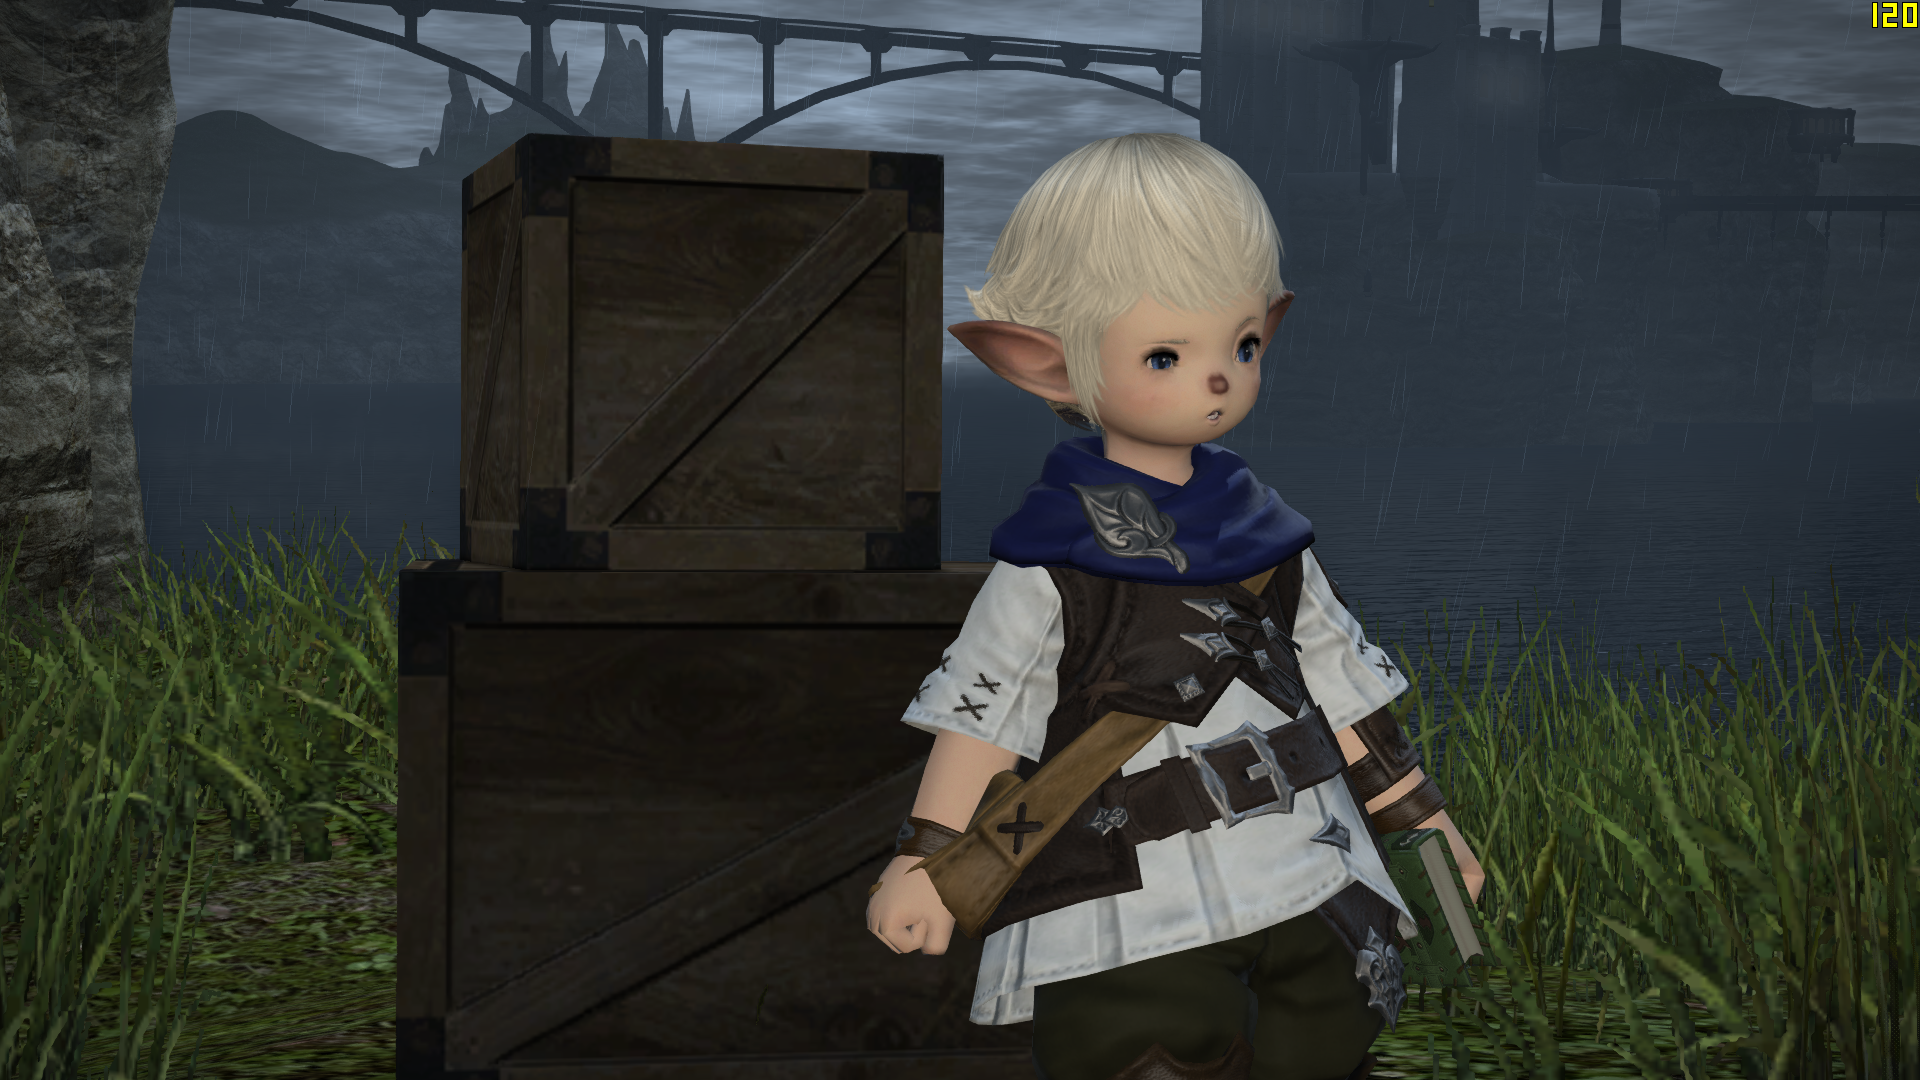 judah r ffxiv yeah thread picture cute lalafell